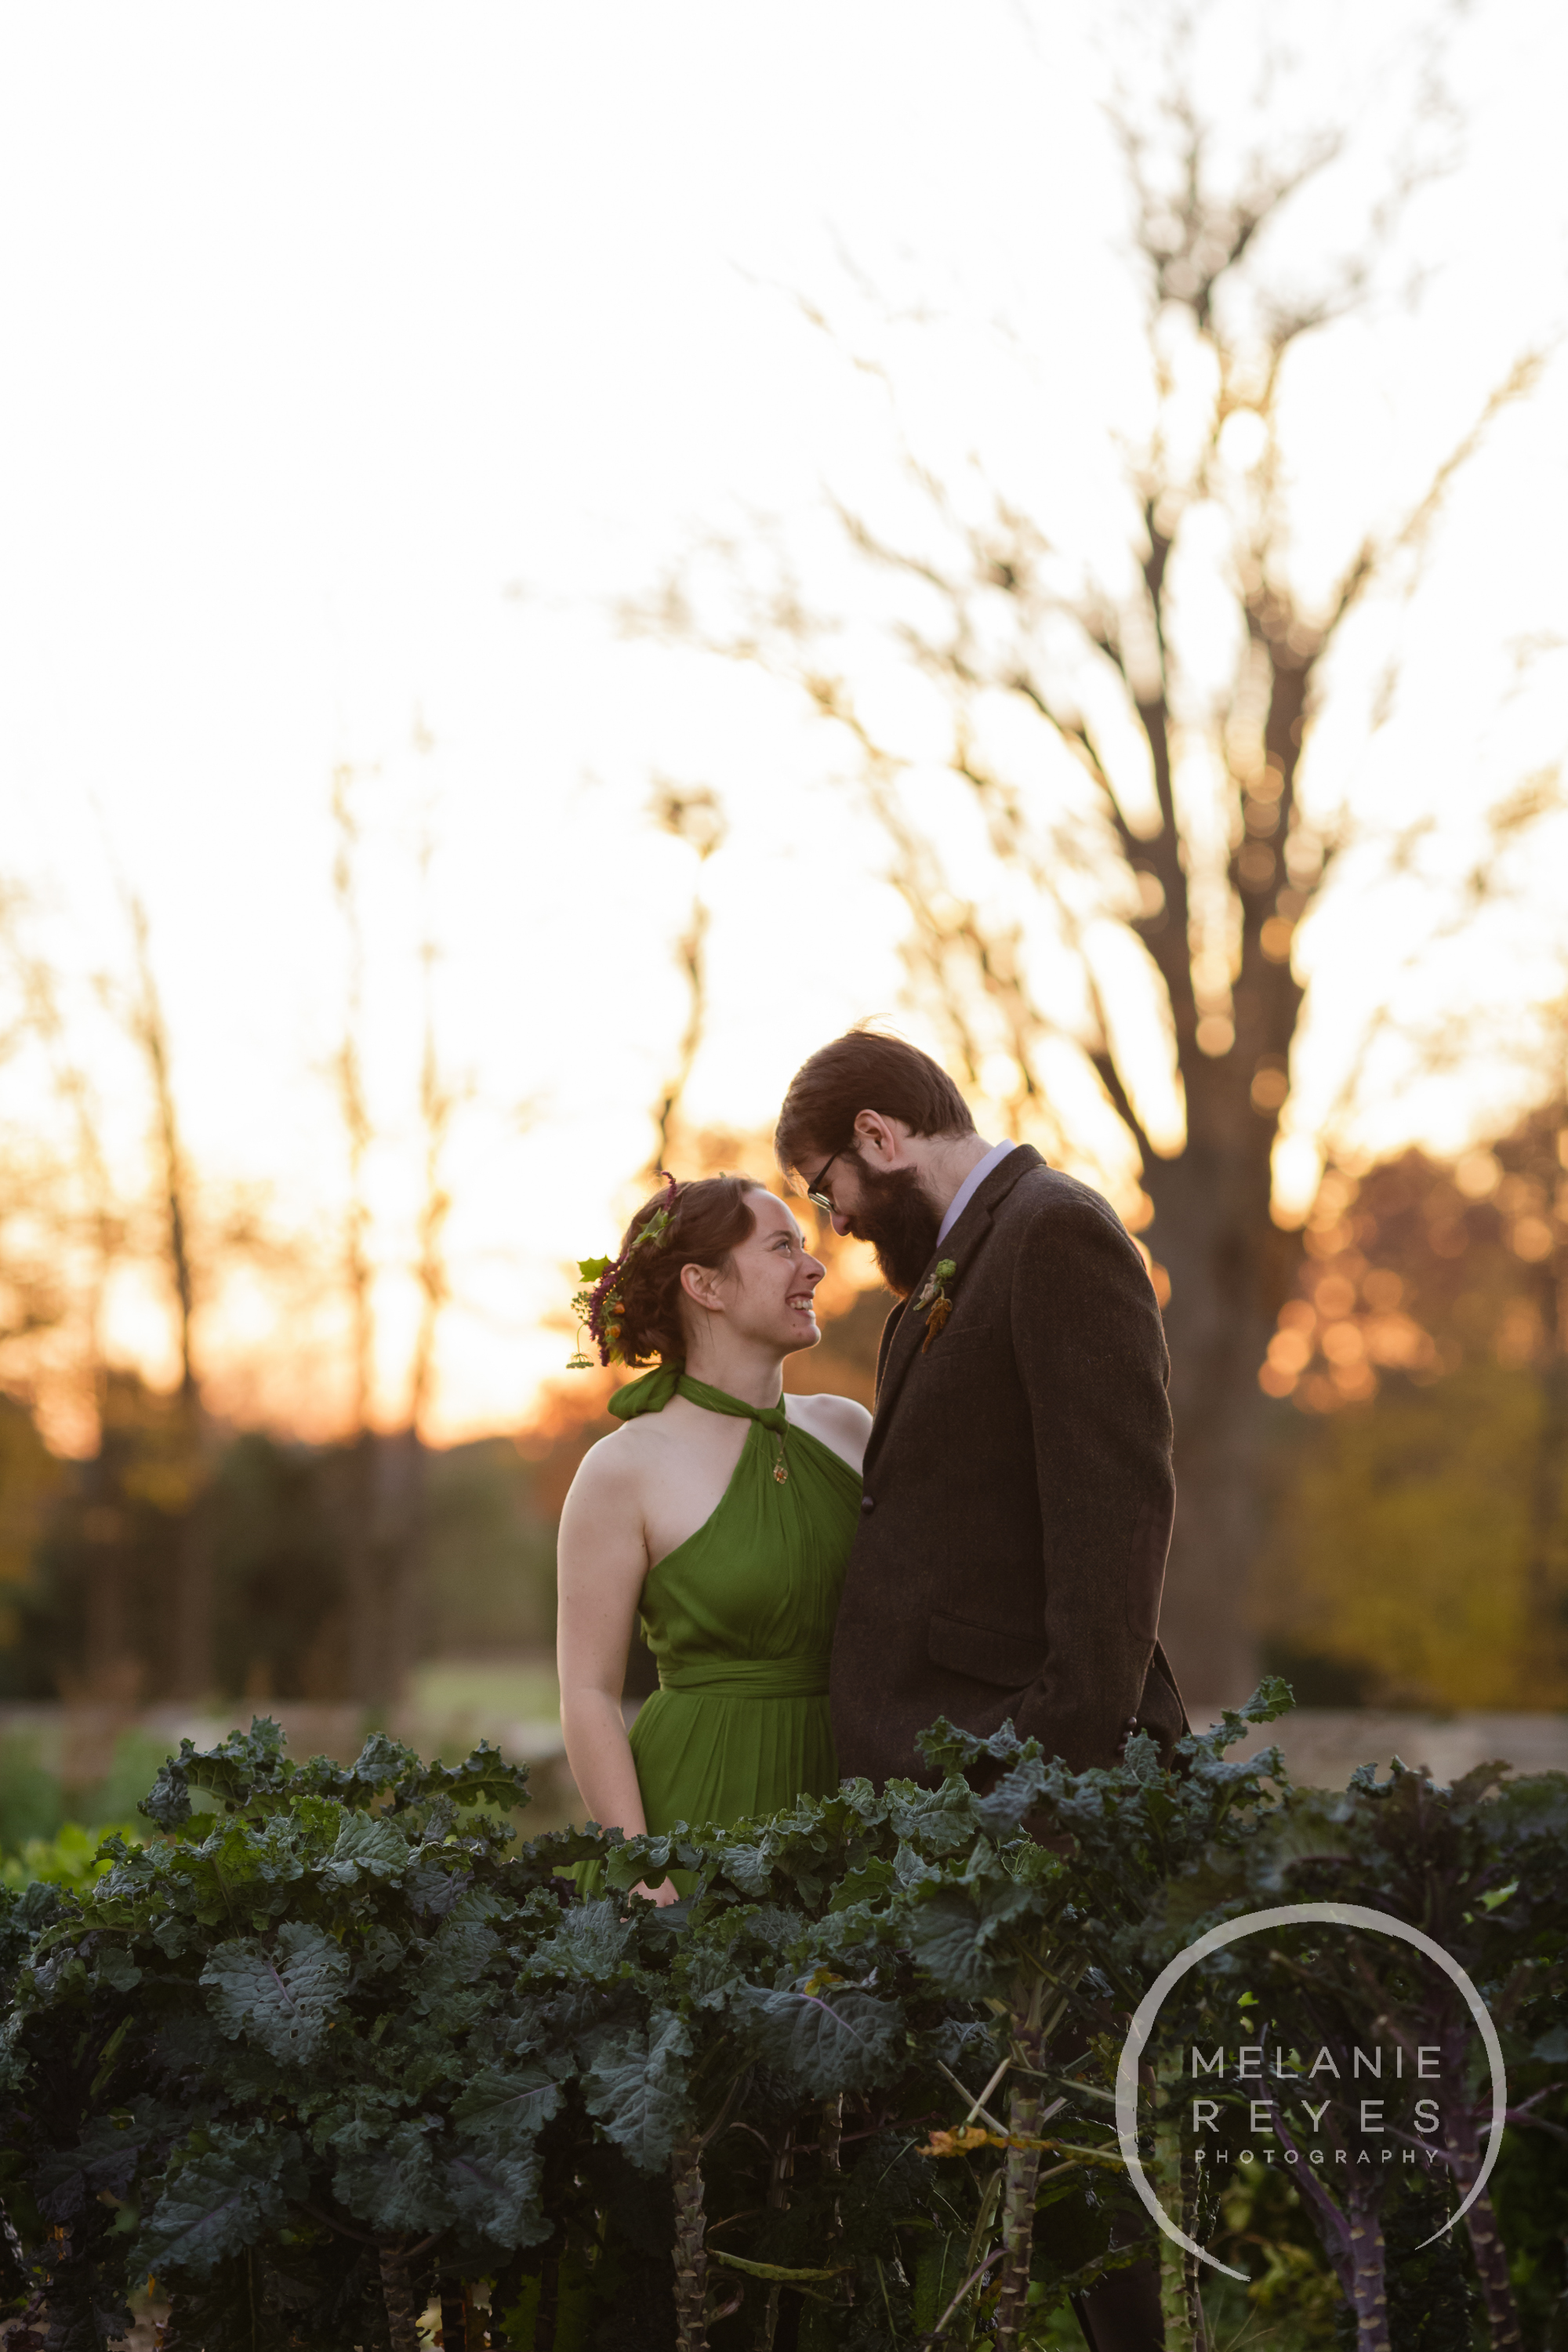 zingermans_cornman_farms_wedding_melanie_reyes_photography_052.JPG